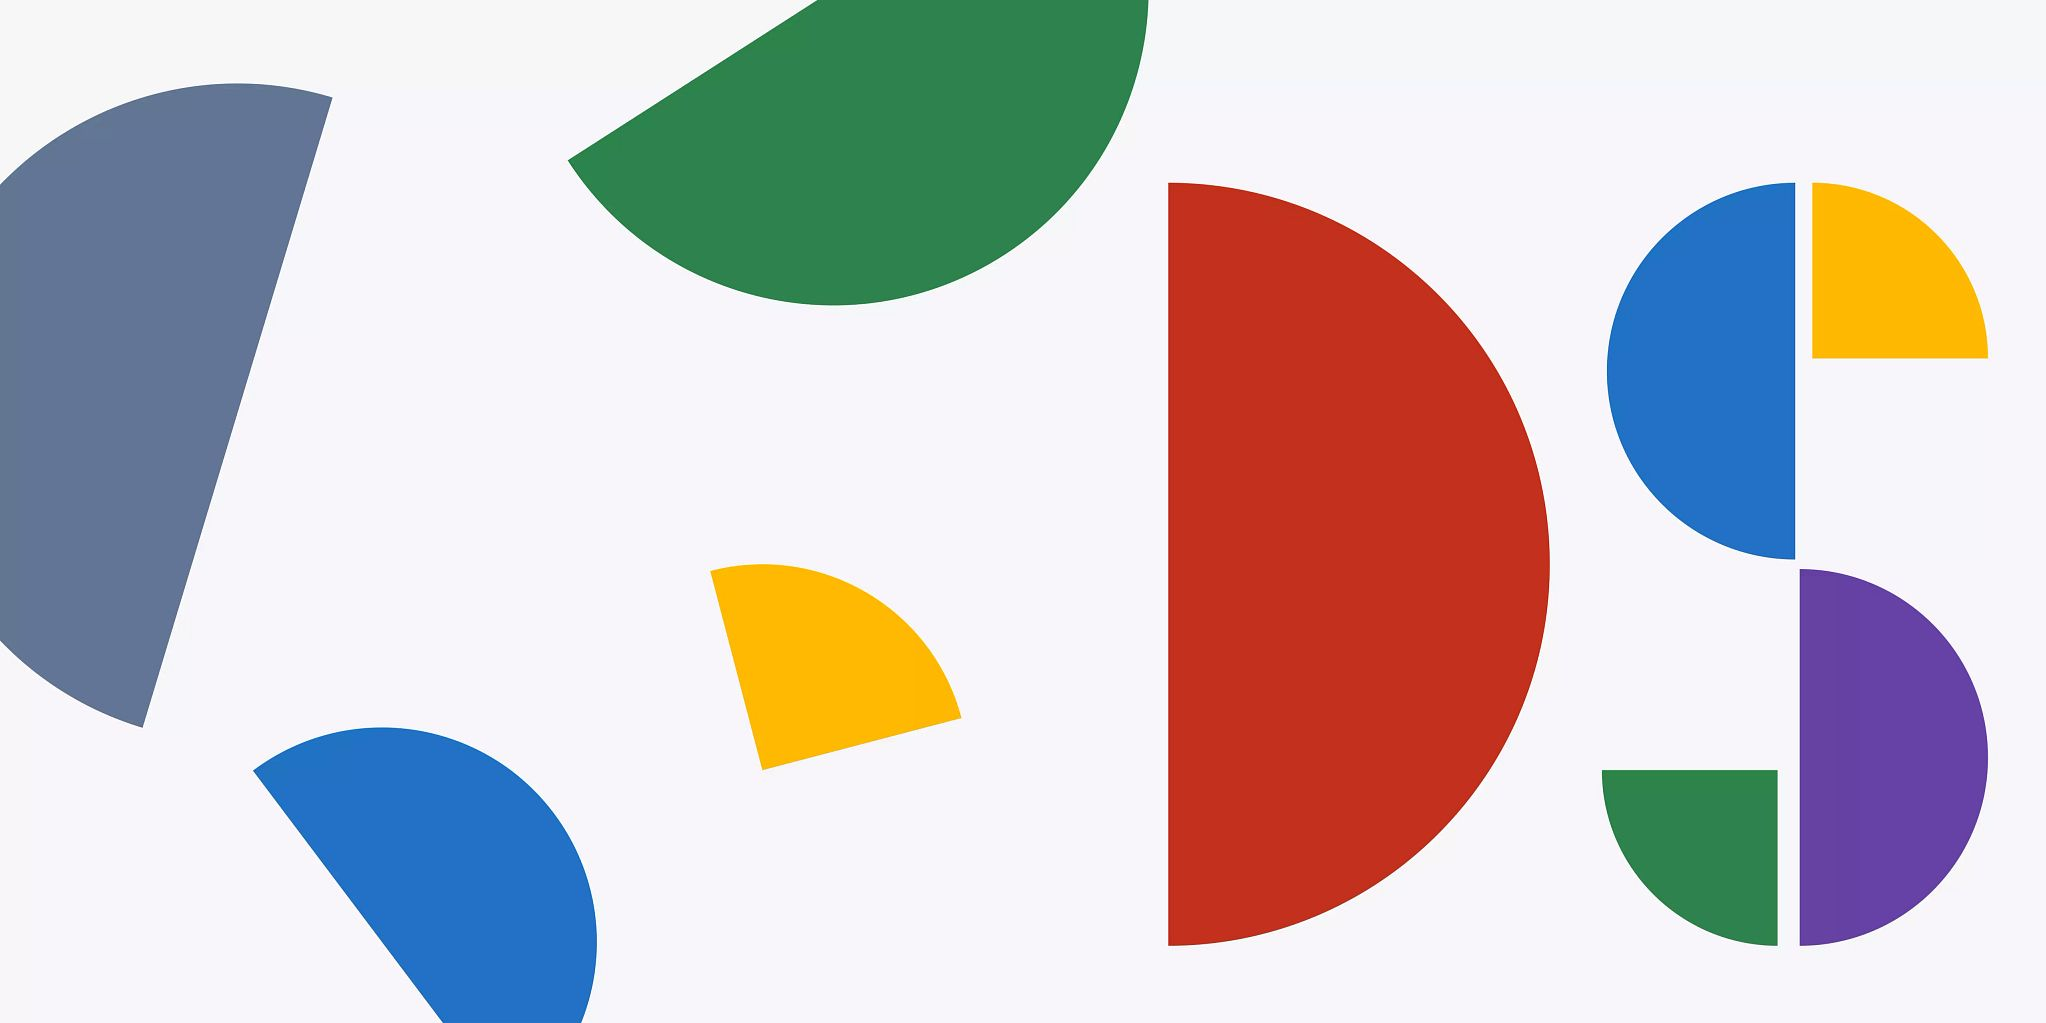 Half and quarter circles in solid colors sporadically placed on the left side of the image. Then these shapes come together on the right side of the image to form a D and S that represents